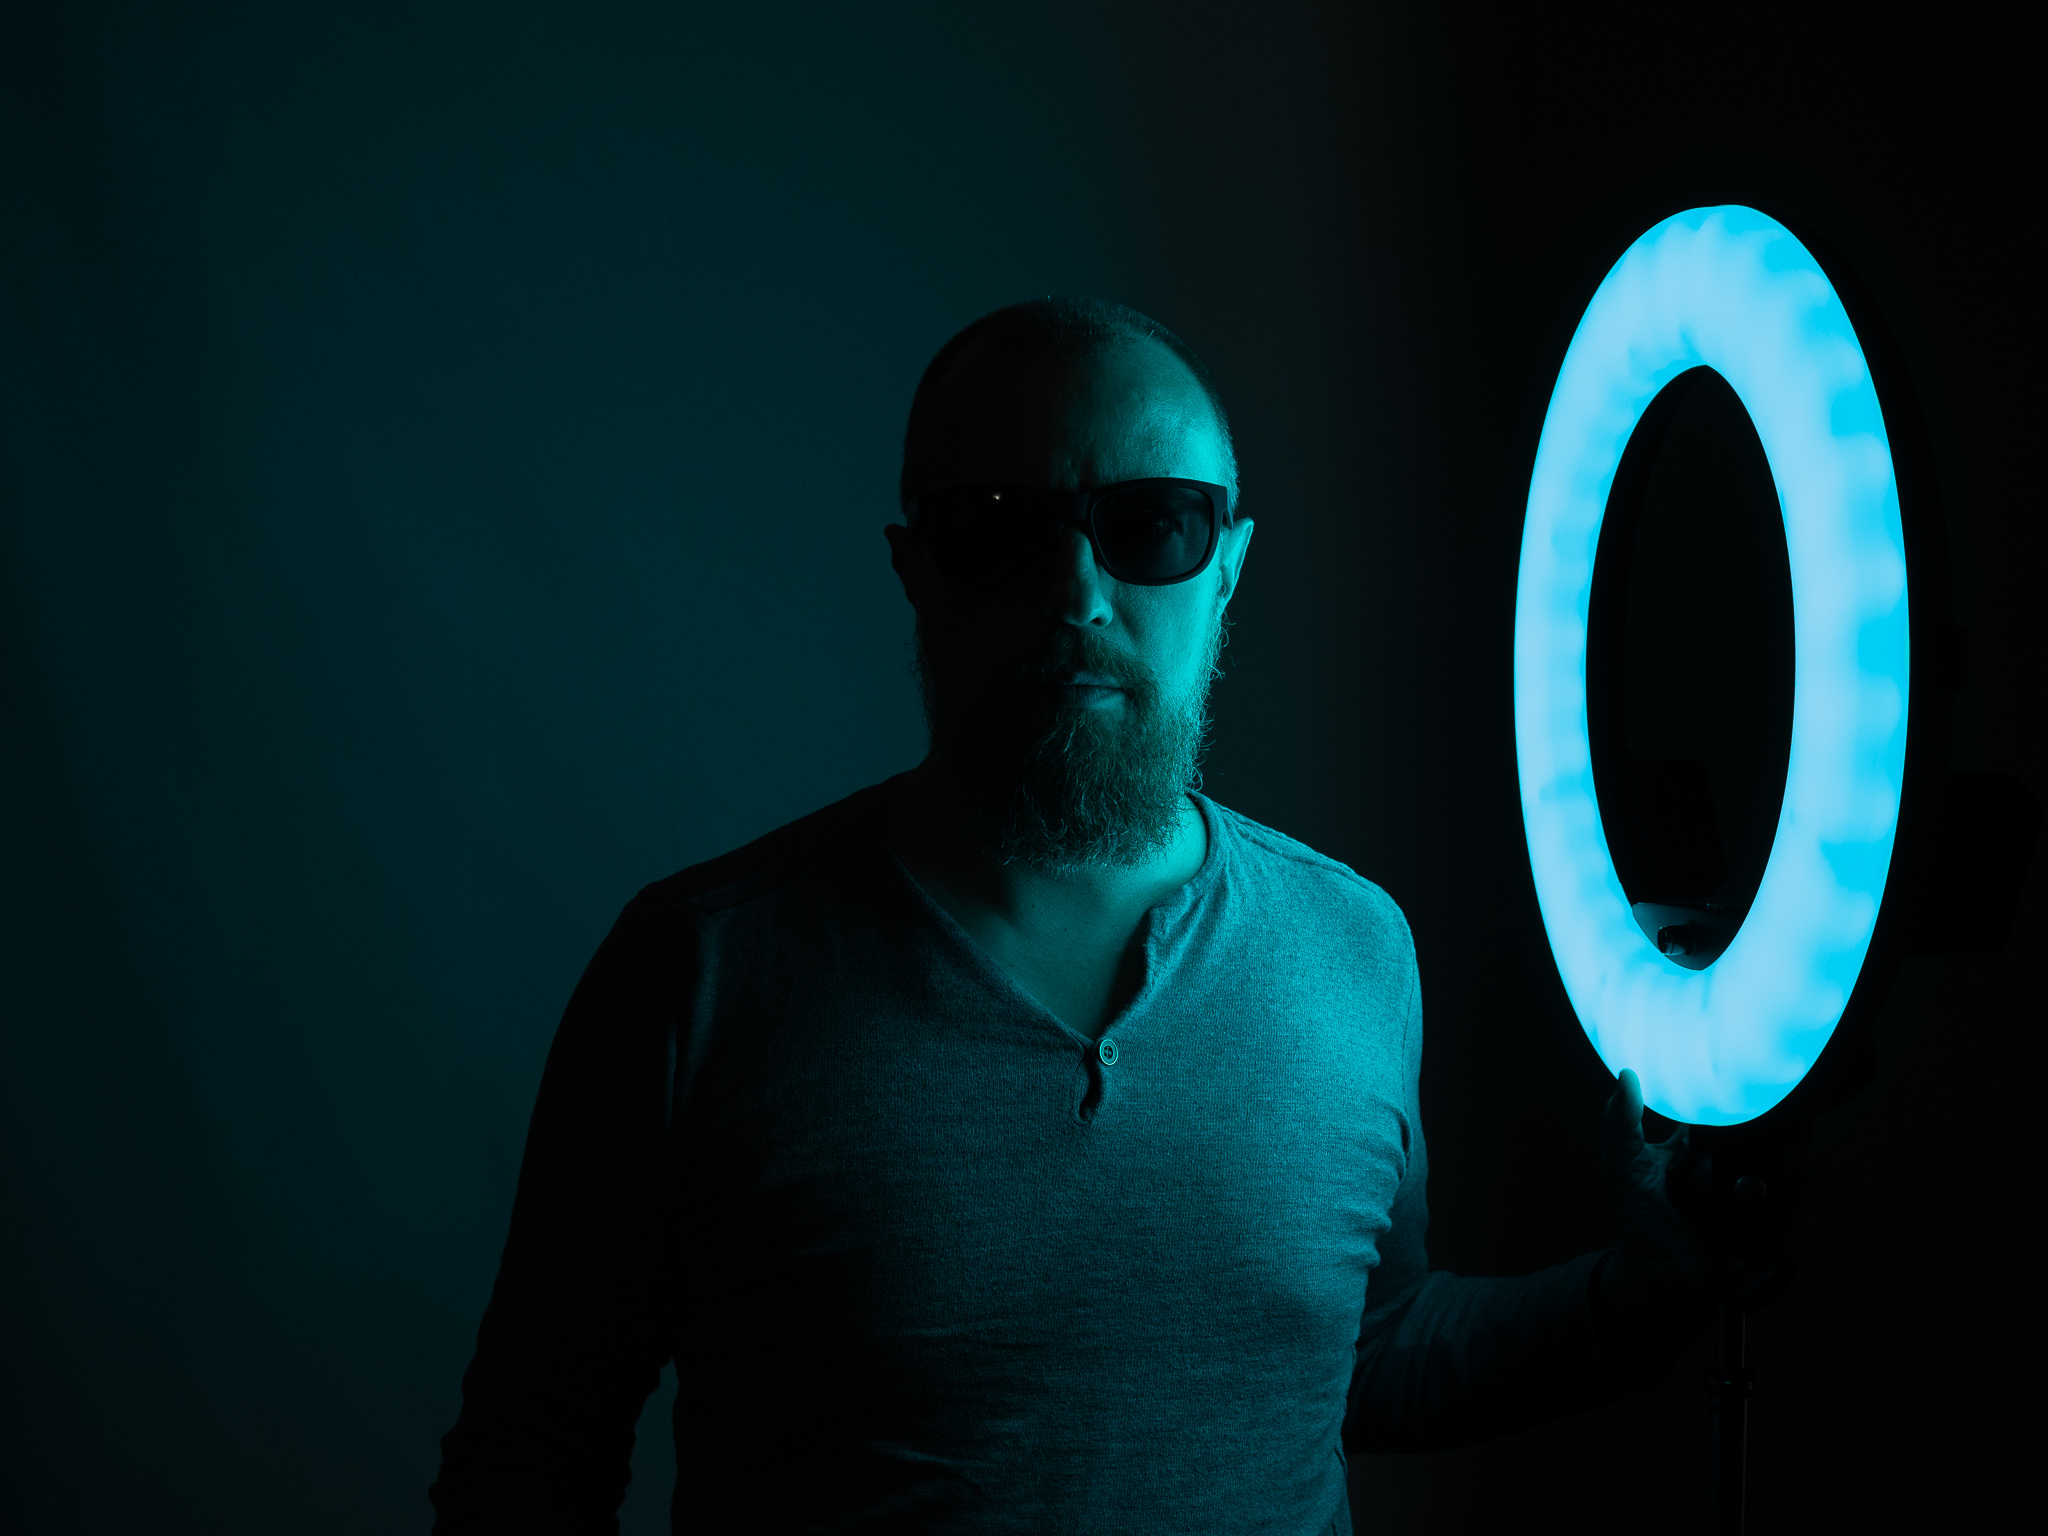 Photo taken with Prismatic Spectra RGB Rainbow LED Ring Light in blue colors